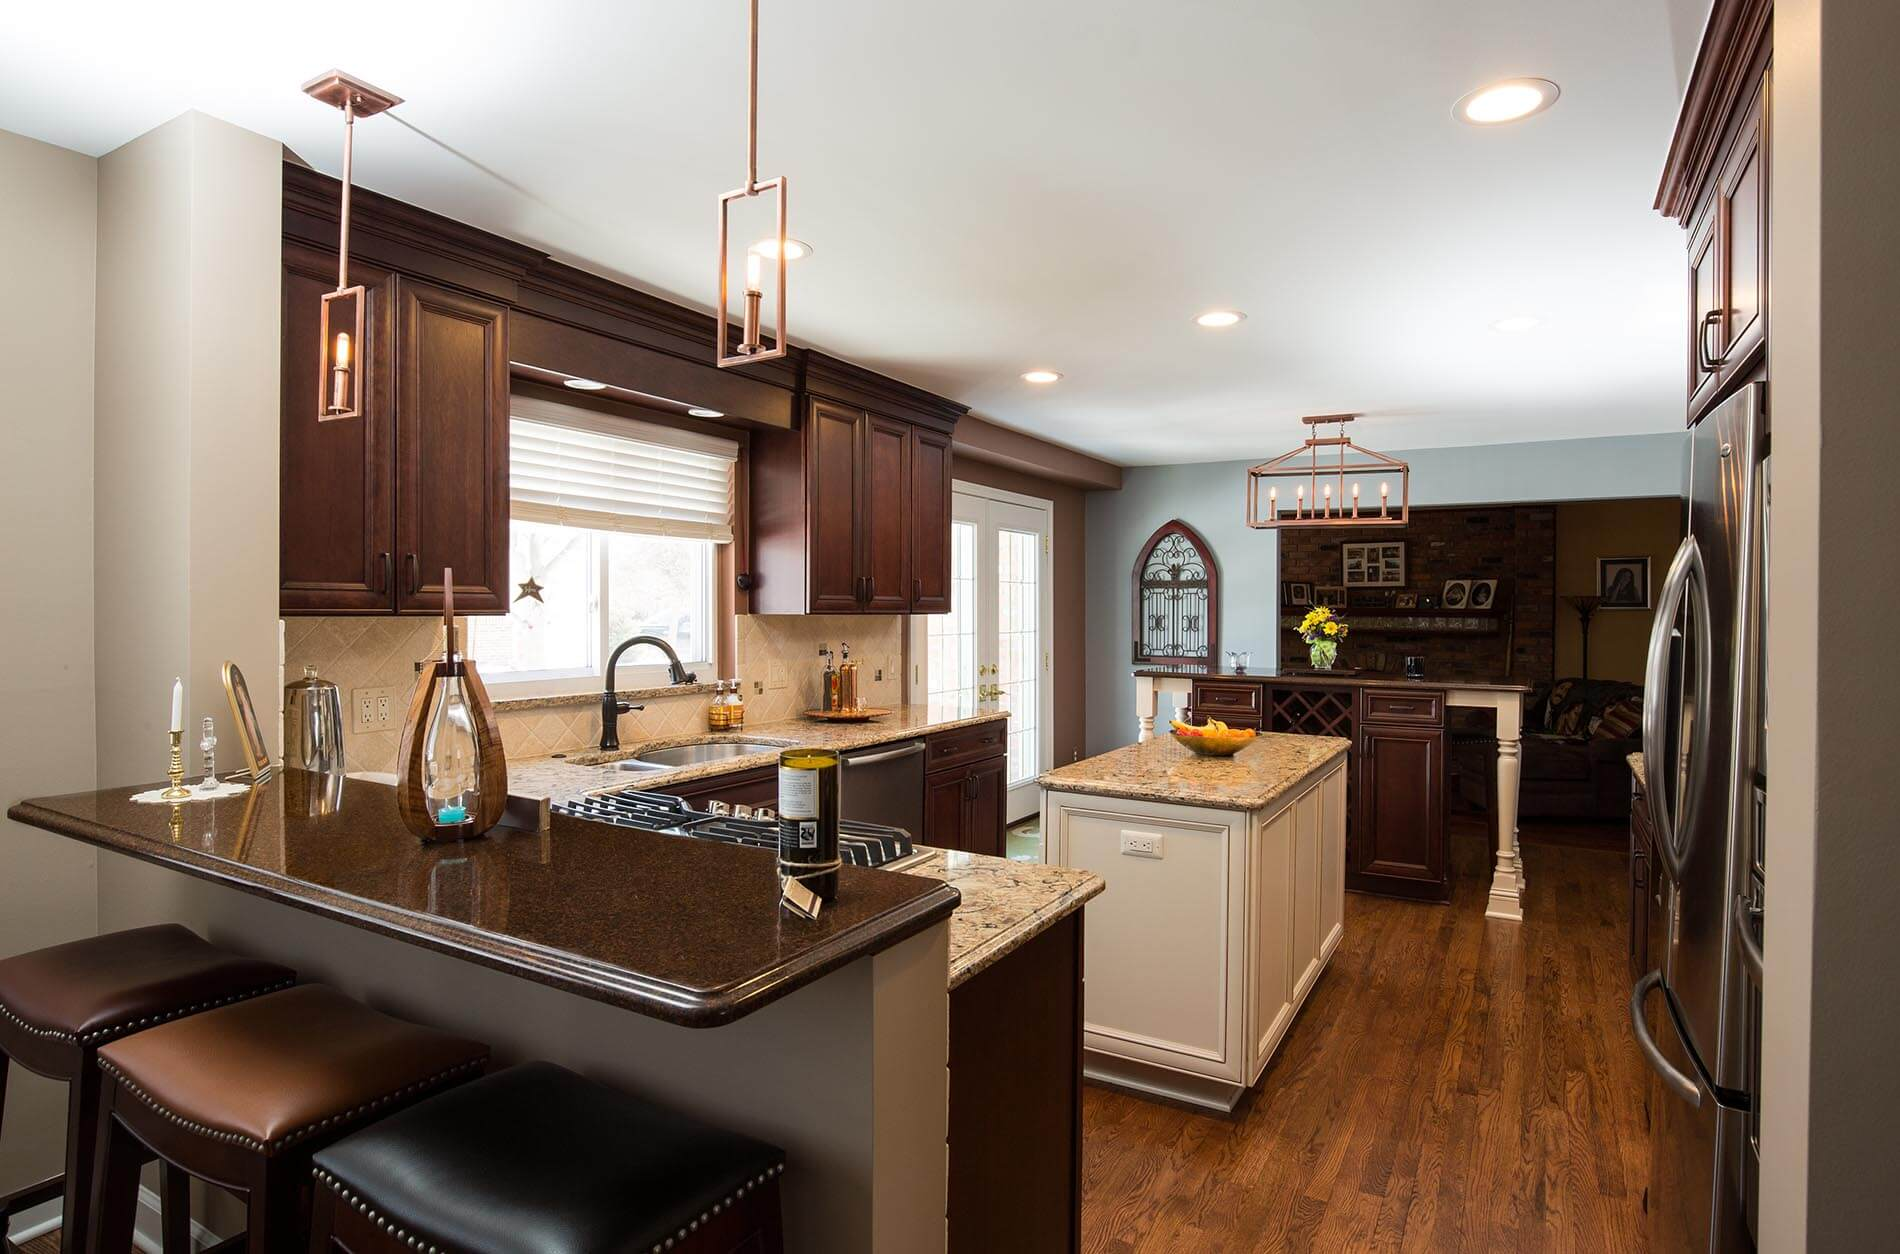 Kitchen with dark stained cabinets, white center work island and separate snack bar.